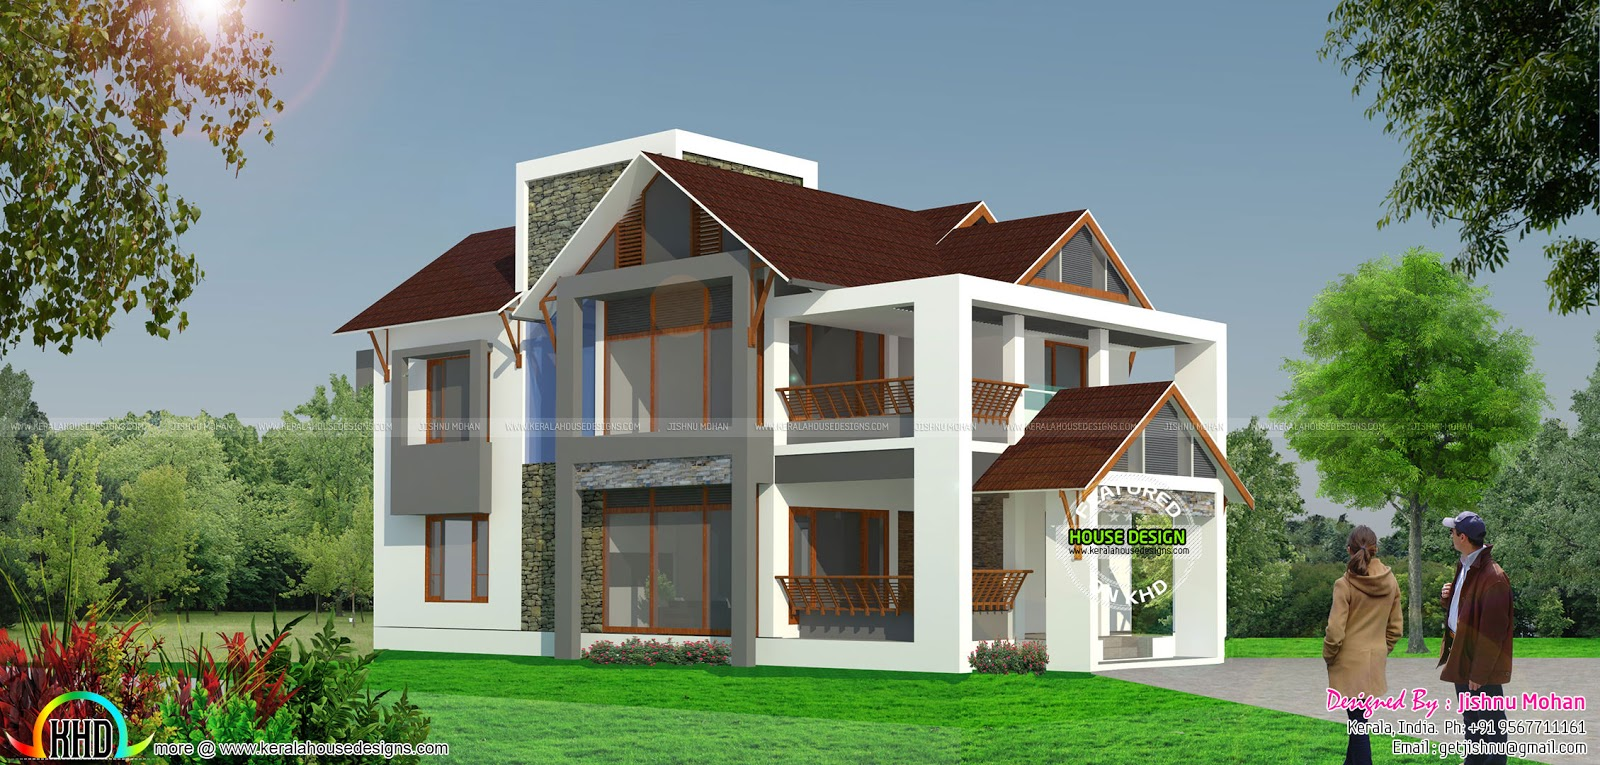 Open plan concept home kerala home design and floor plans for 1600 sq ft open concept house plans